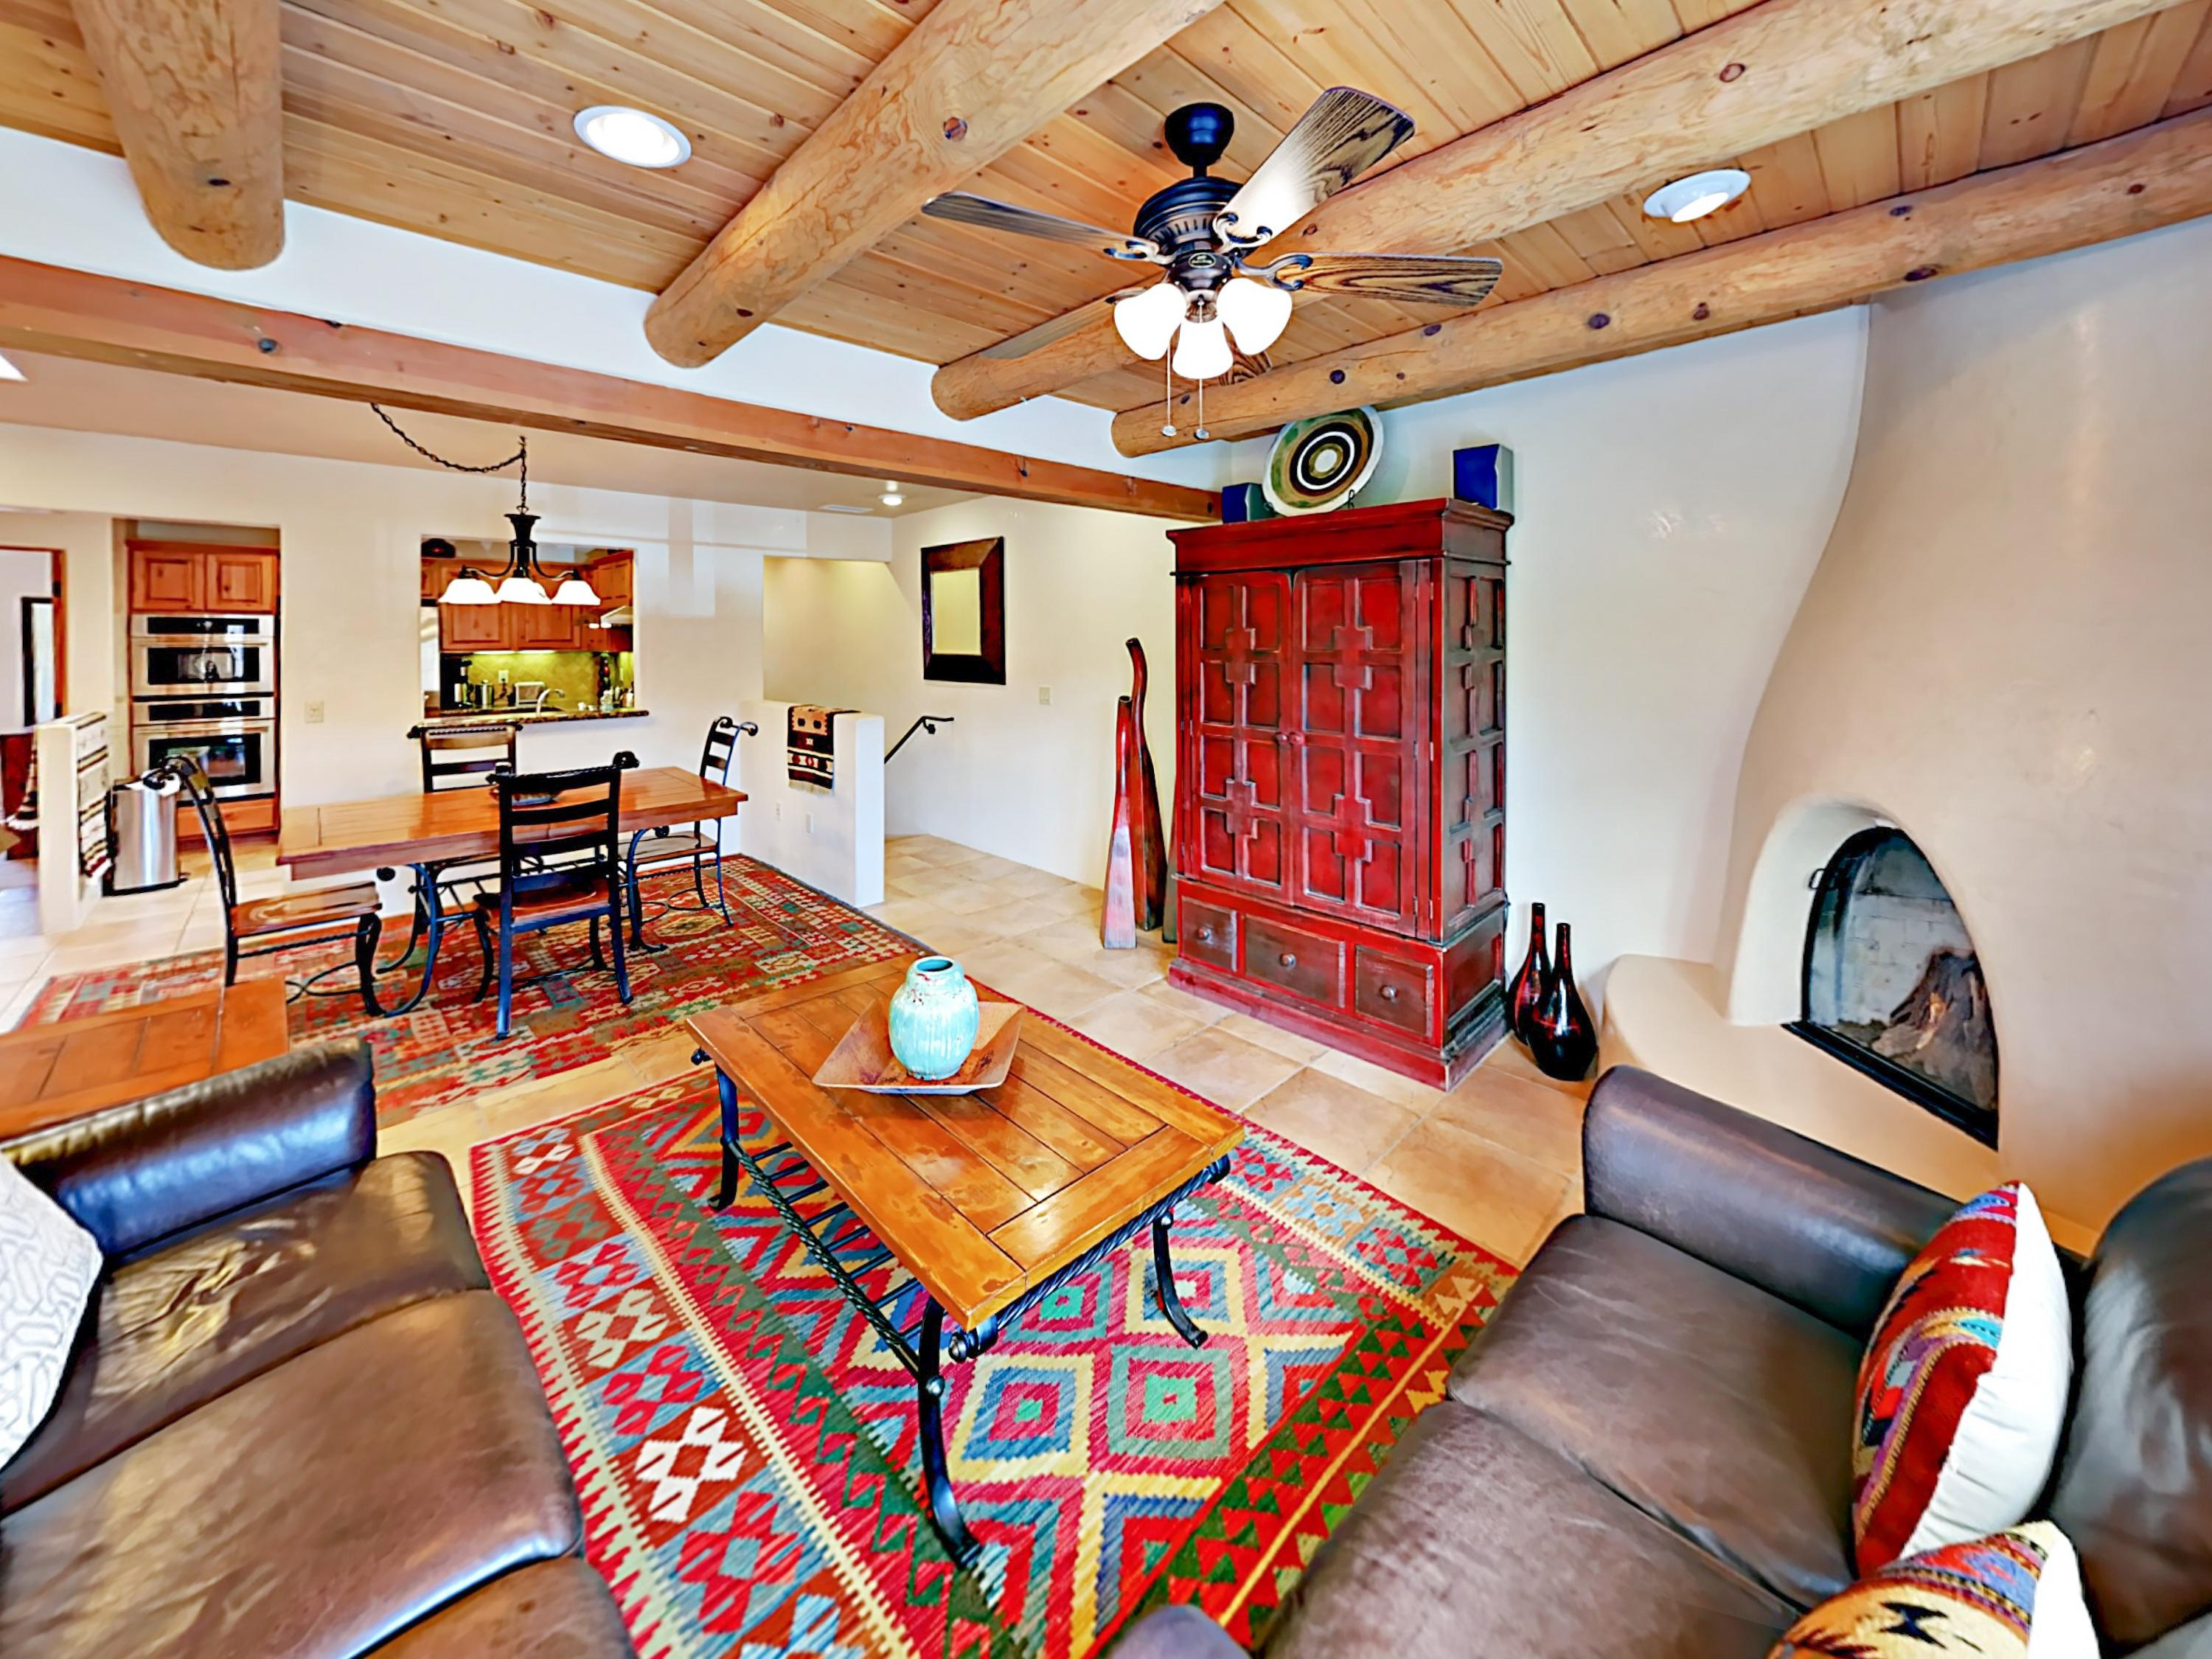 Welcome to Santa Fe! Bright and airy, this luxuriously appointed home offers high-end finishes throughout including vigas and hand-troweled Venetian plaster walls.